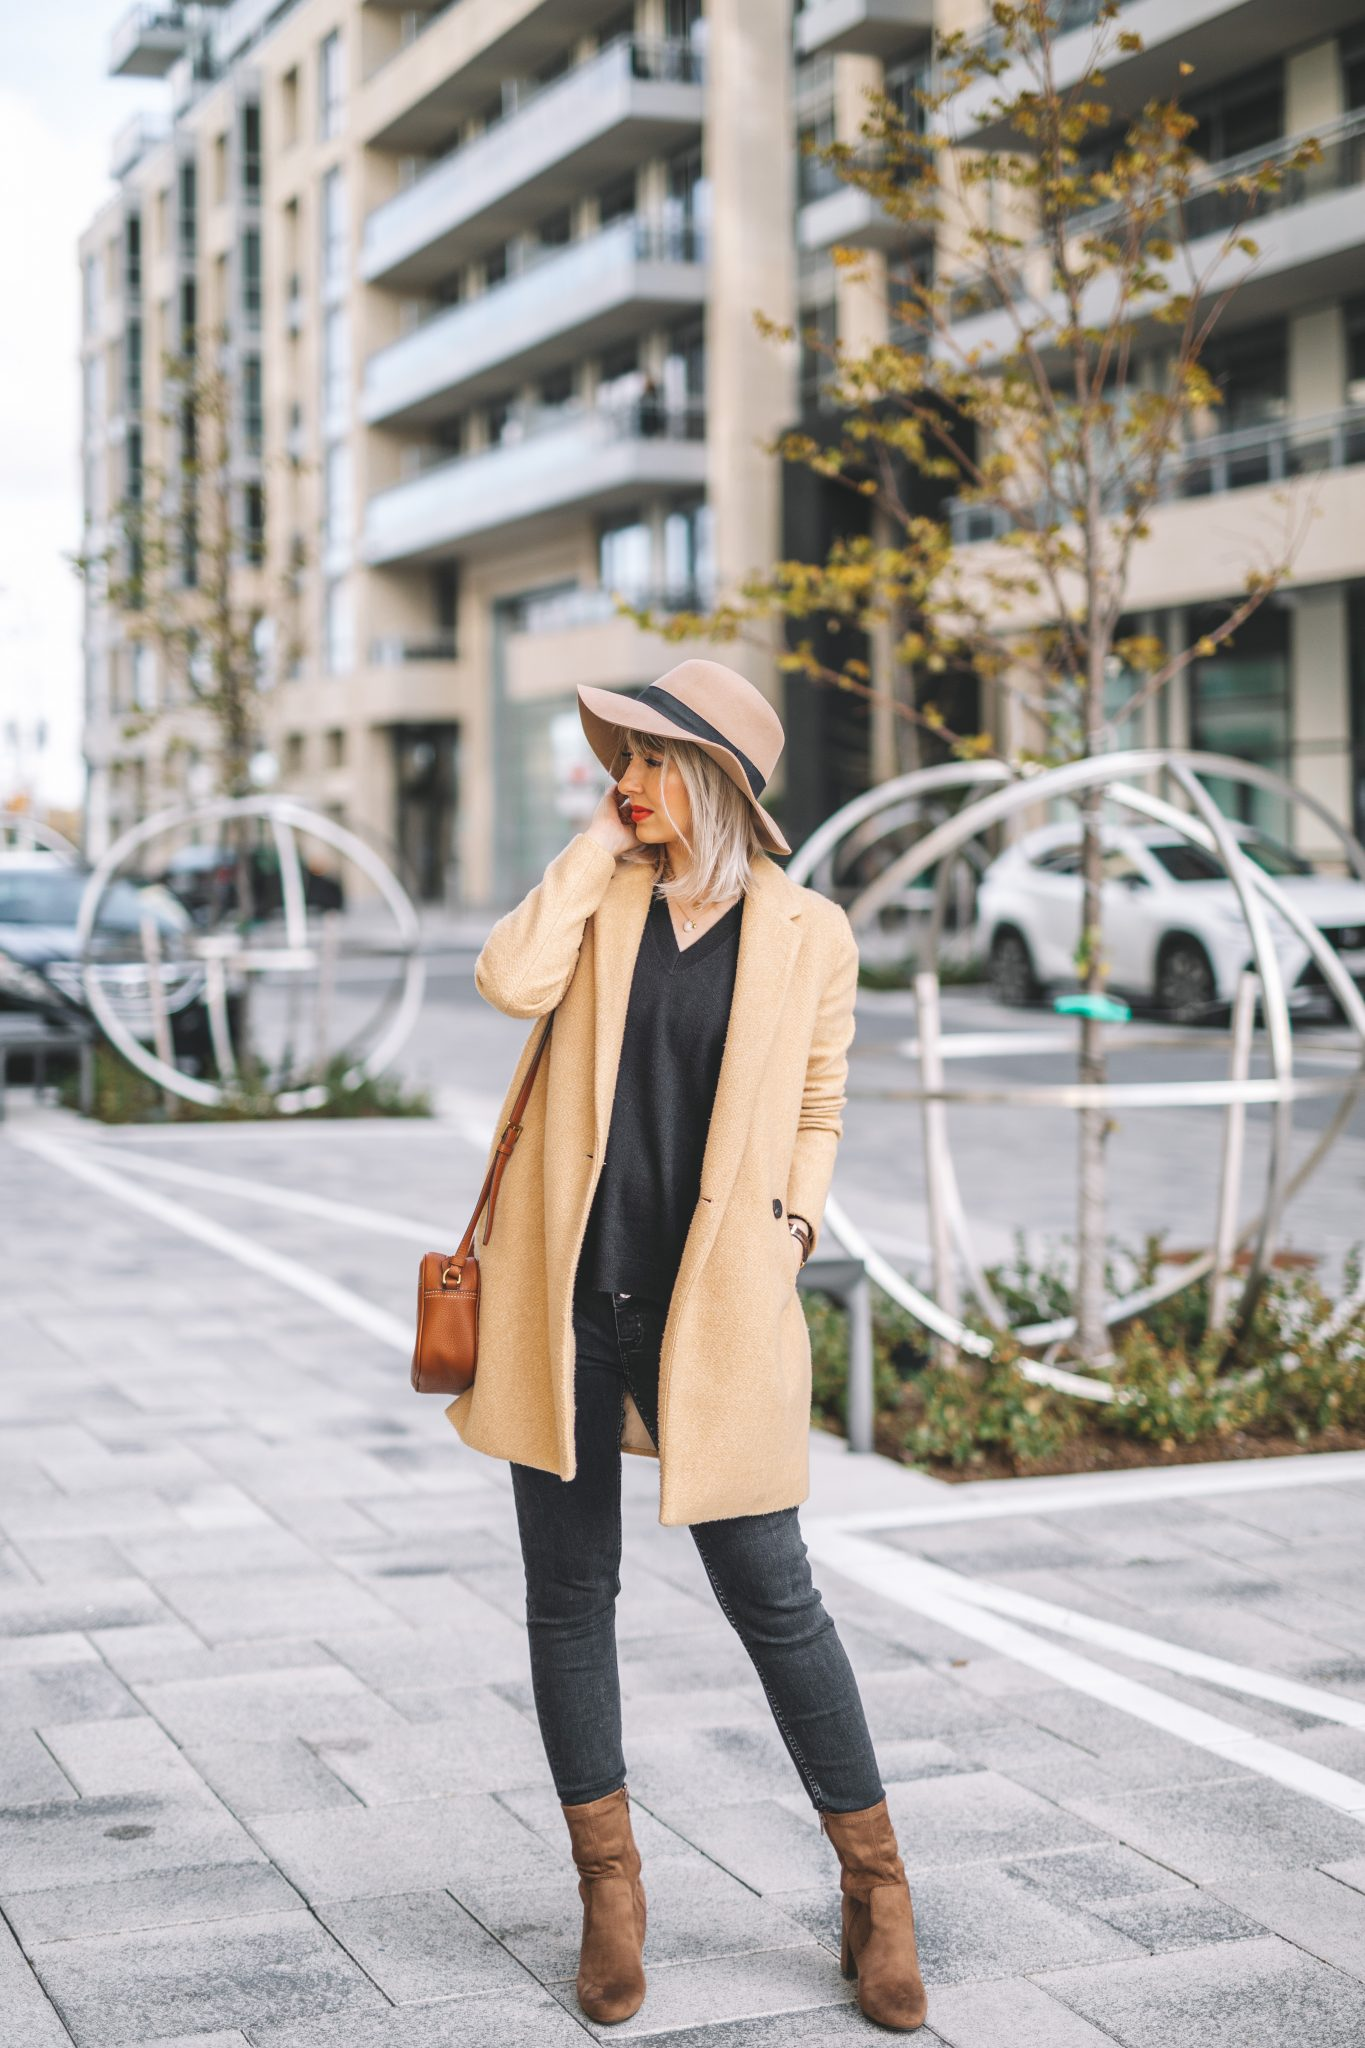 Beige coat and hat minimalist style (2 of 10)